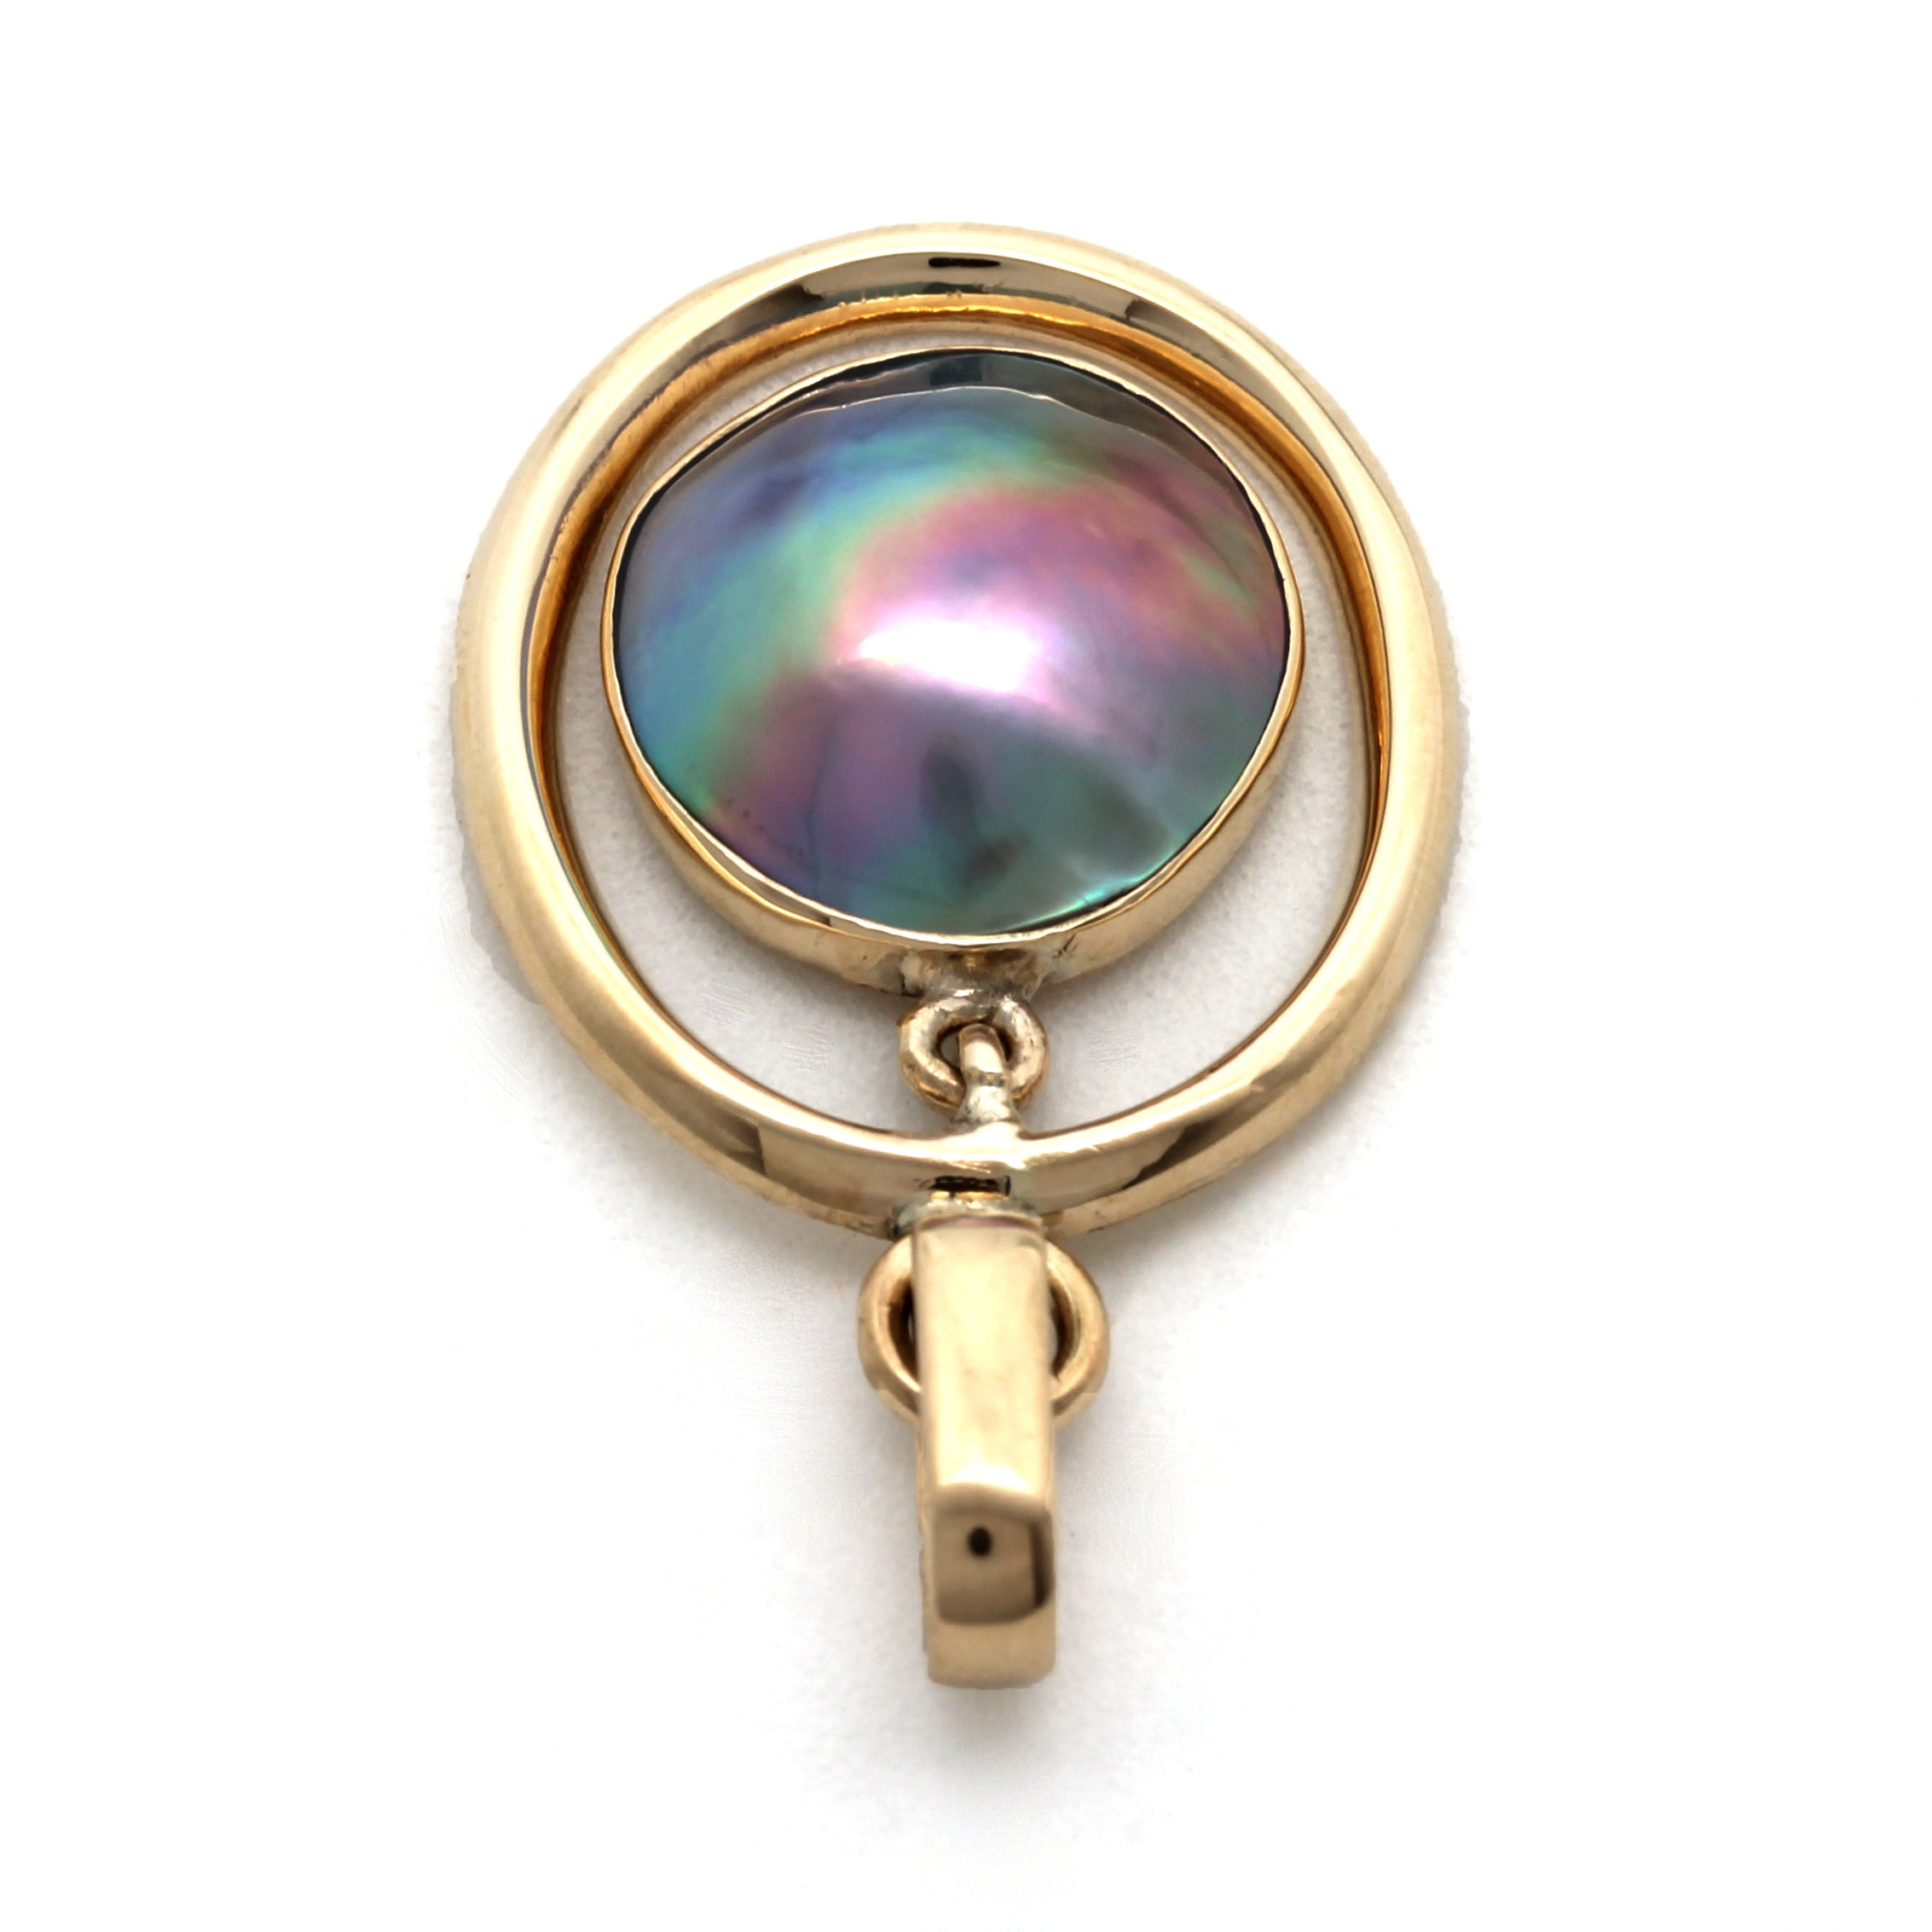 14K Yellow Gold Pendant with Cortez Mabe Pearl